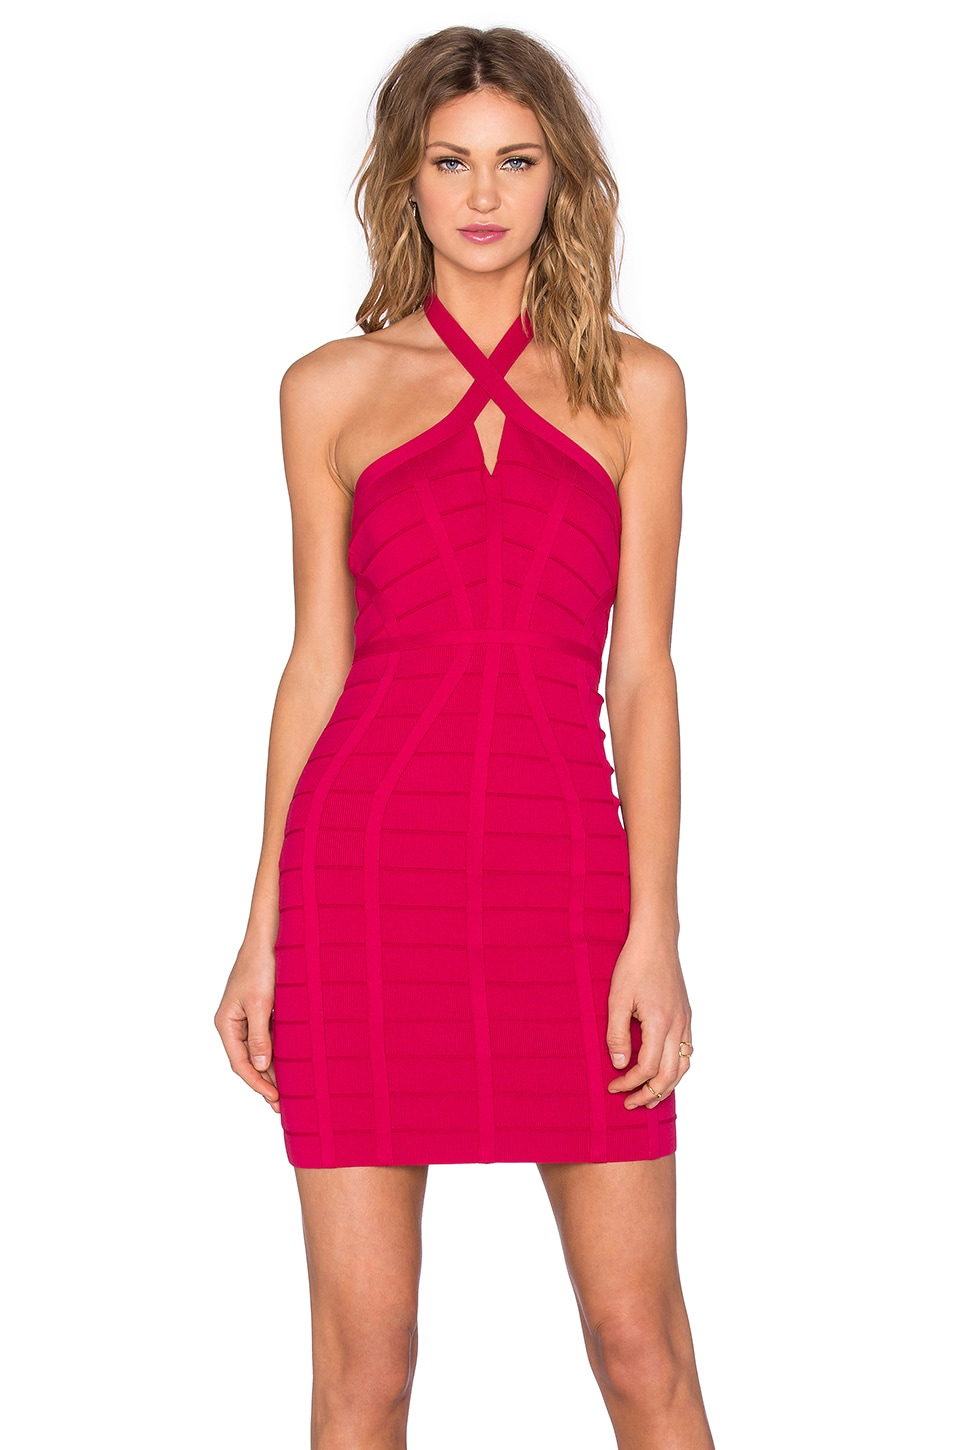 NBD x REVOLVE Twisted Bodycon Dress in Pink